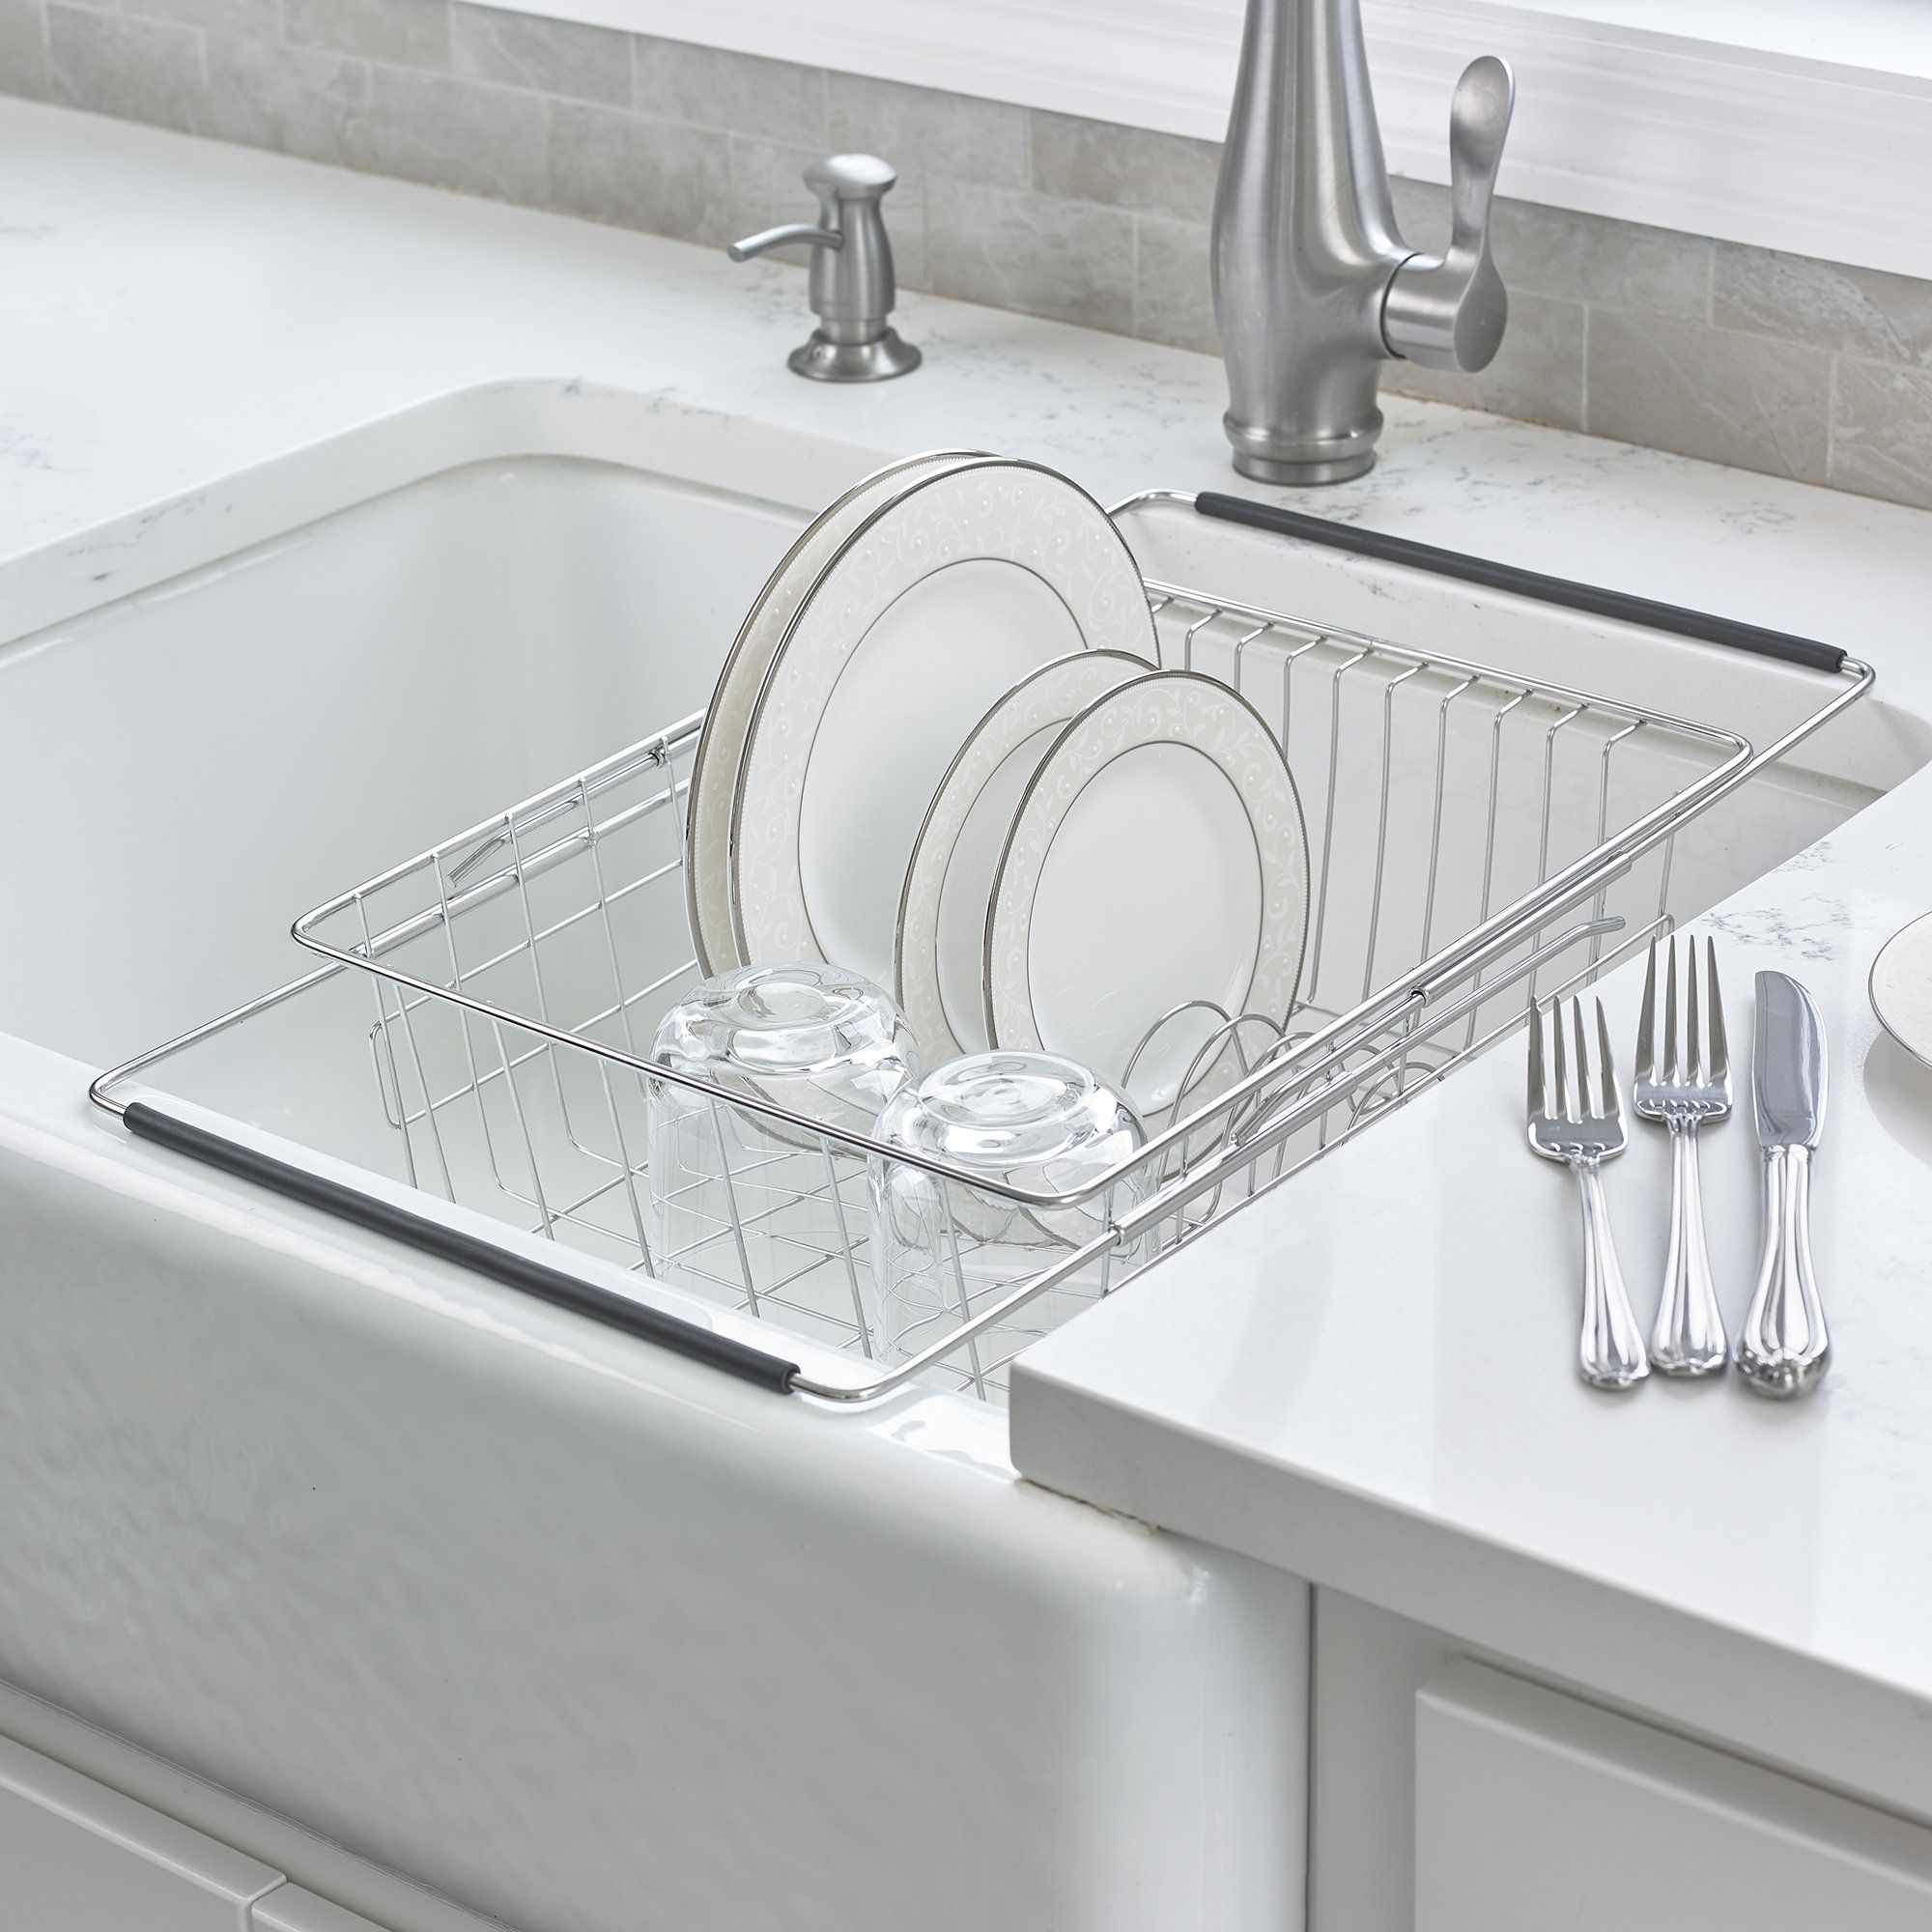 Expandable In Sink Dish Rack In 2021 Kitchen Sink Drying Rack Sink Dish Rack Drying Rack Kitchen